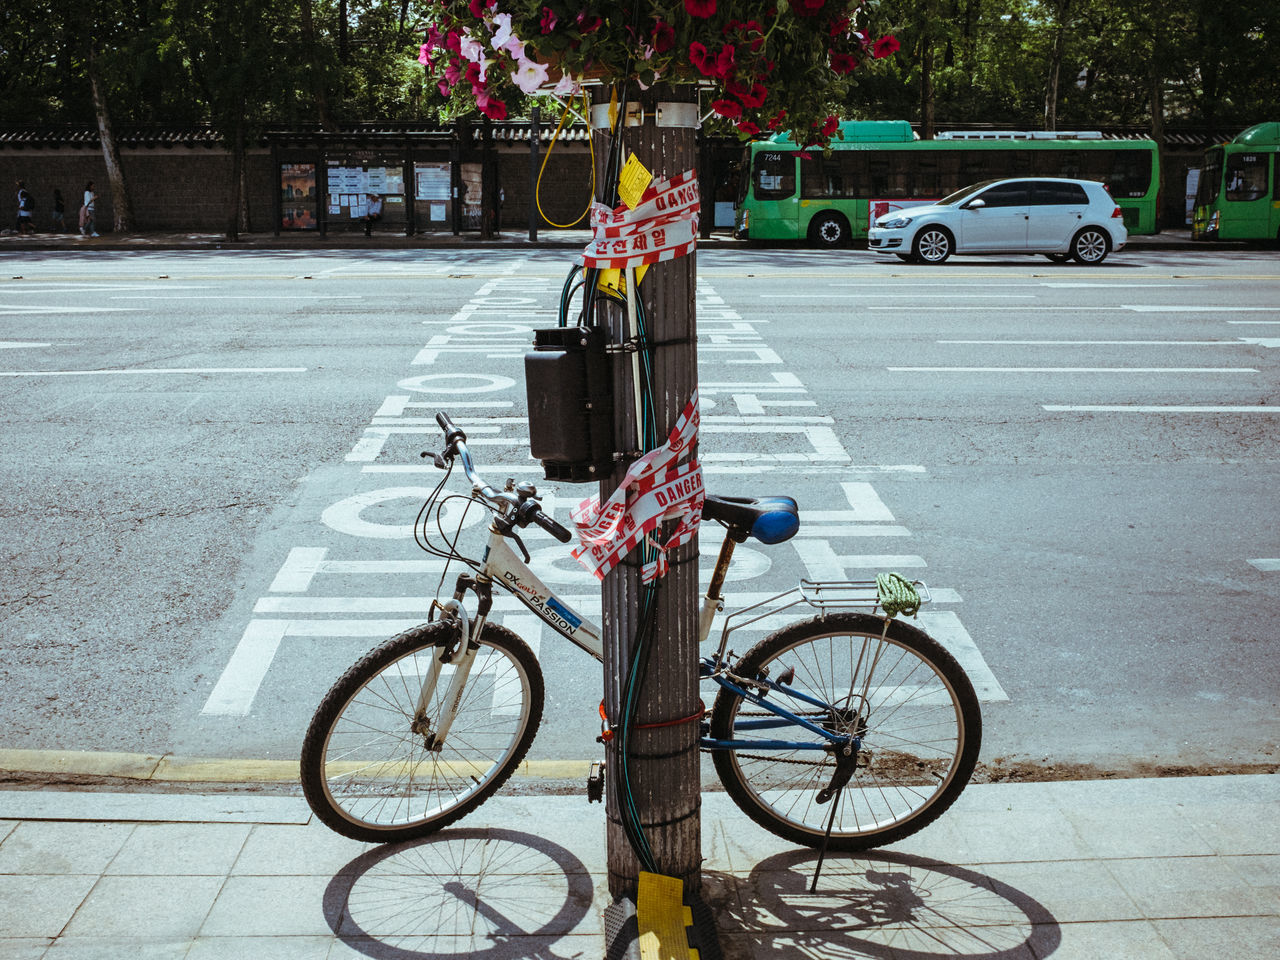 bicycle, transportation, mode of transport, land vehicle, stationary, street, parking, outdoors, day, car, city, road, tree, bicycle rack, no people